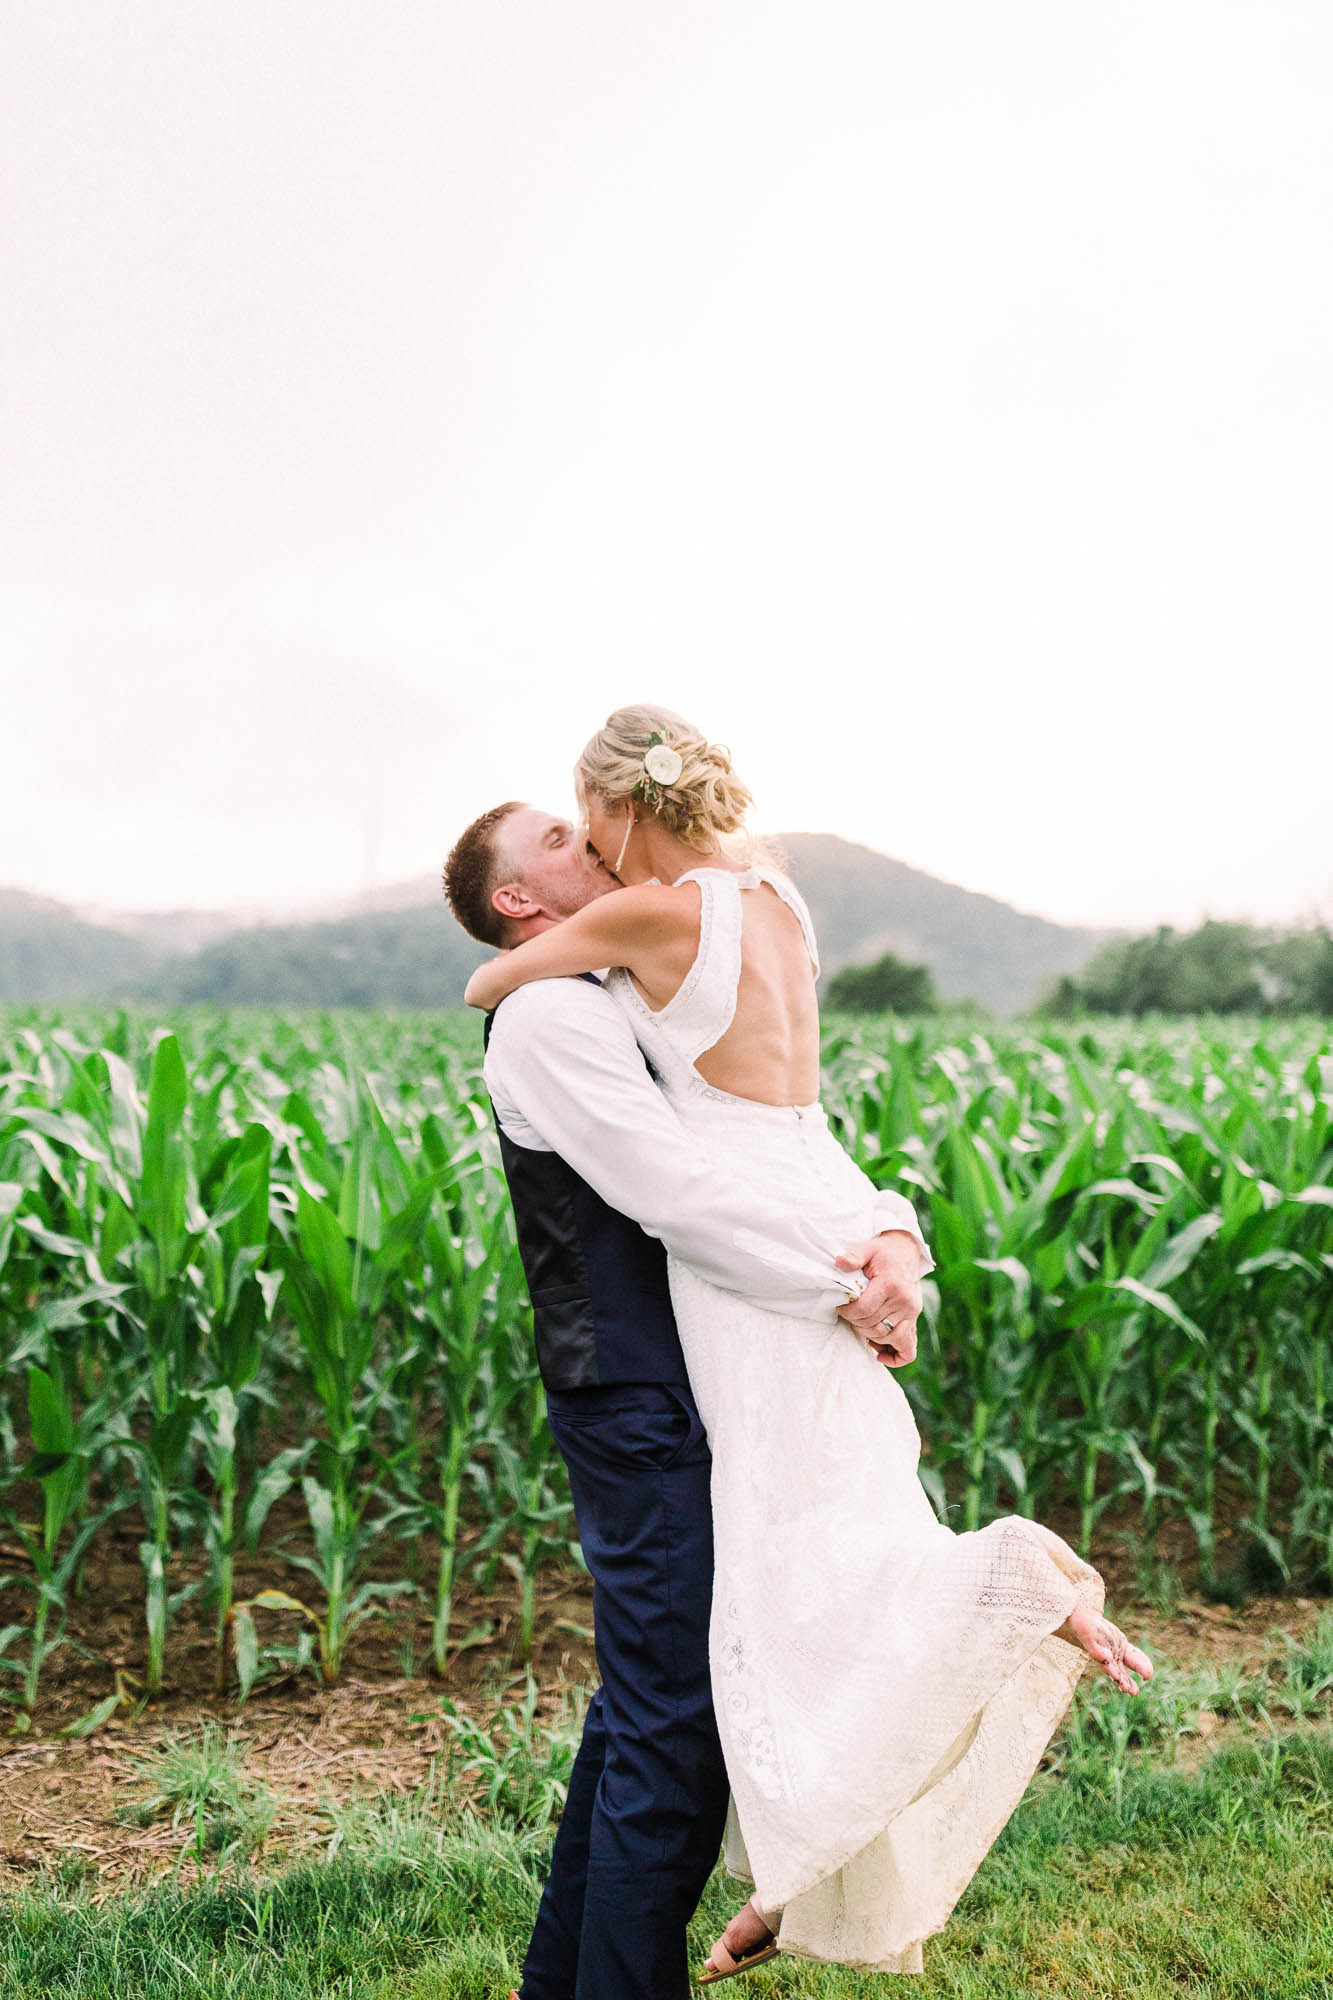 Muncy-backyard-farm-wedding-5456.jpg